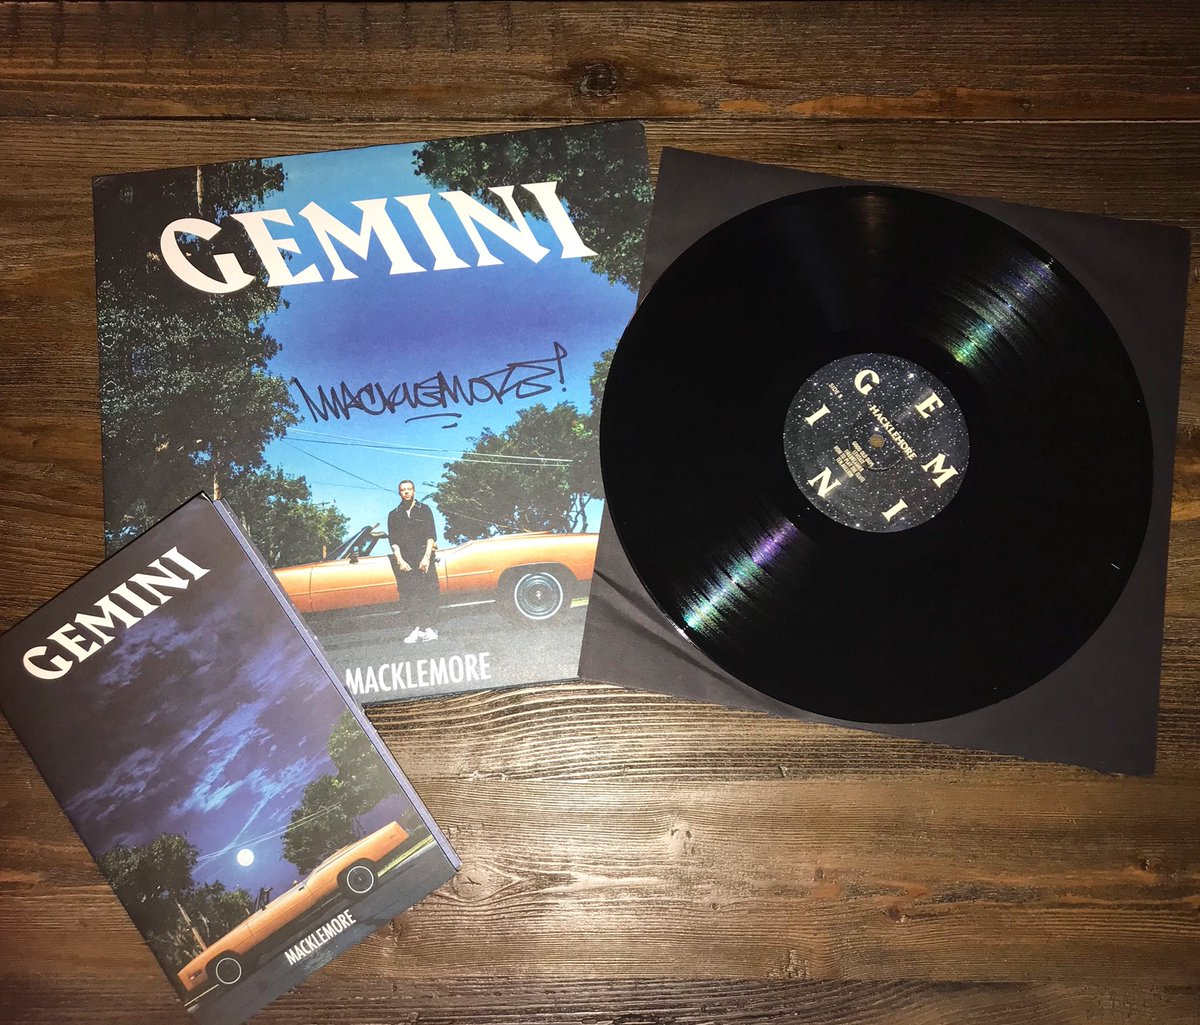 RT @coachLid: The @macklemore Gemini Record showed up today and it was AUTOGRAPHED!! #GeminiTour https://t.co/MfQhecqspo